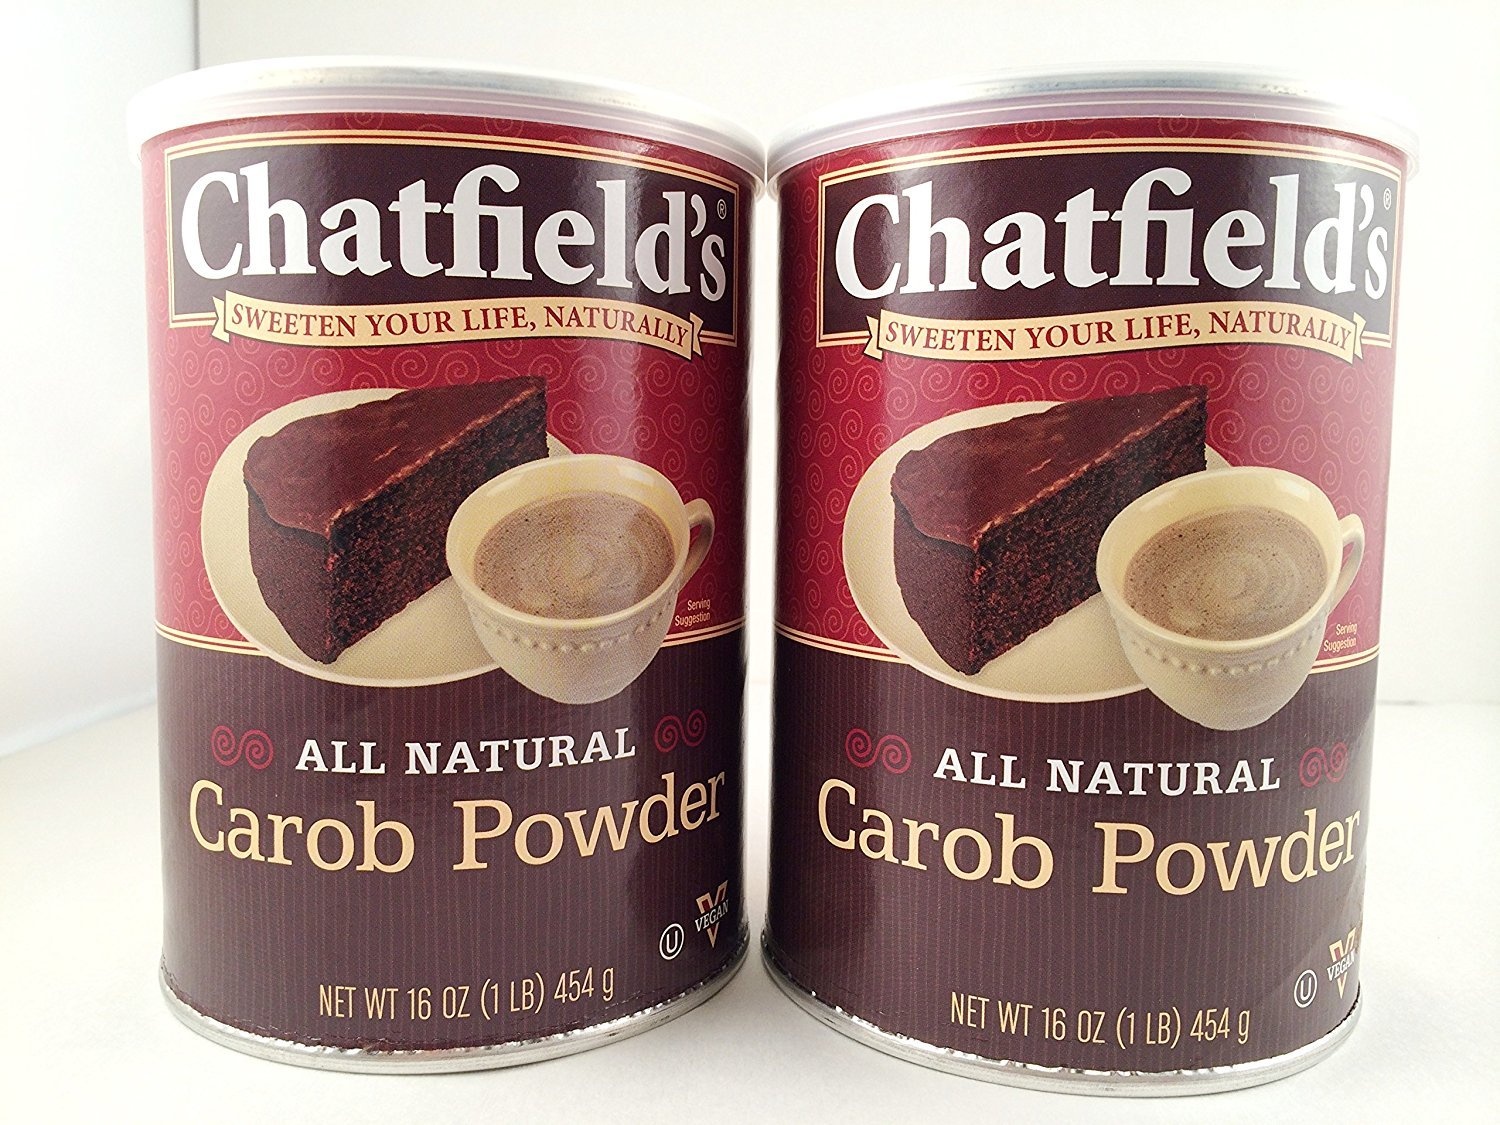 Chatfield's All Natural Carob Powder - Value Pack of Two 1 LB. Cans